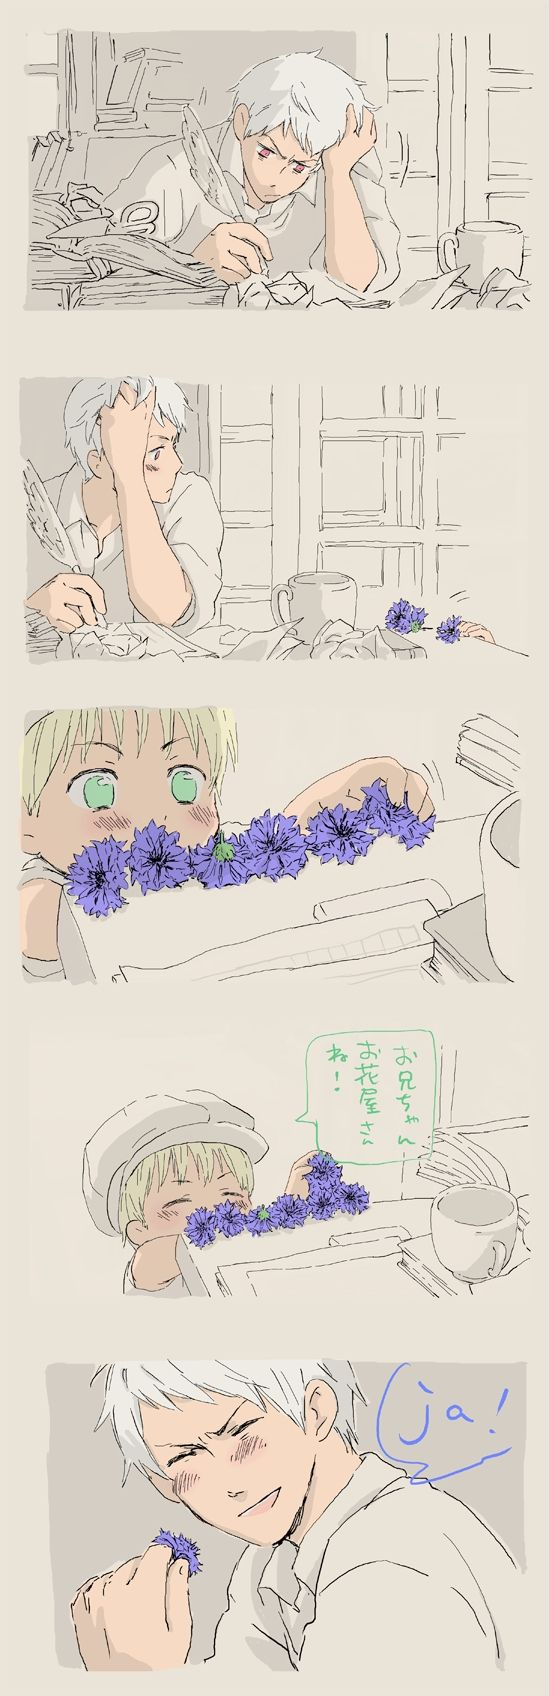 Hetalia - Germany and Prussia. Awww this made me feel all warm inside